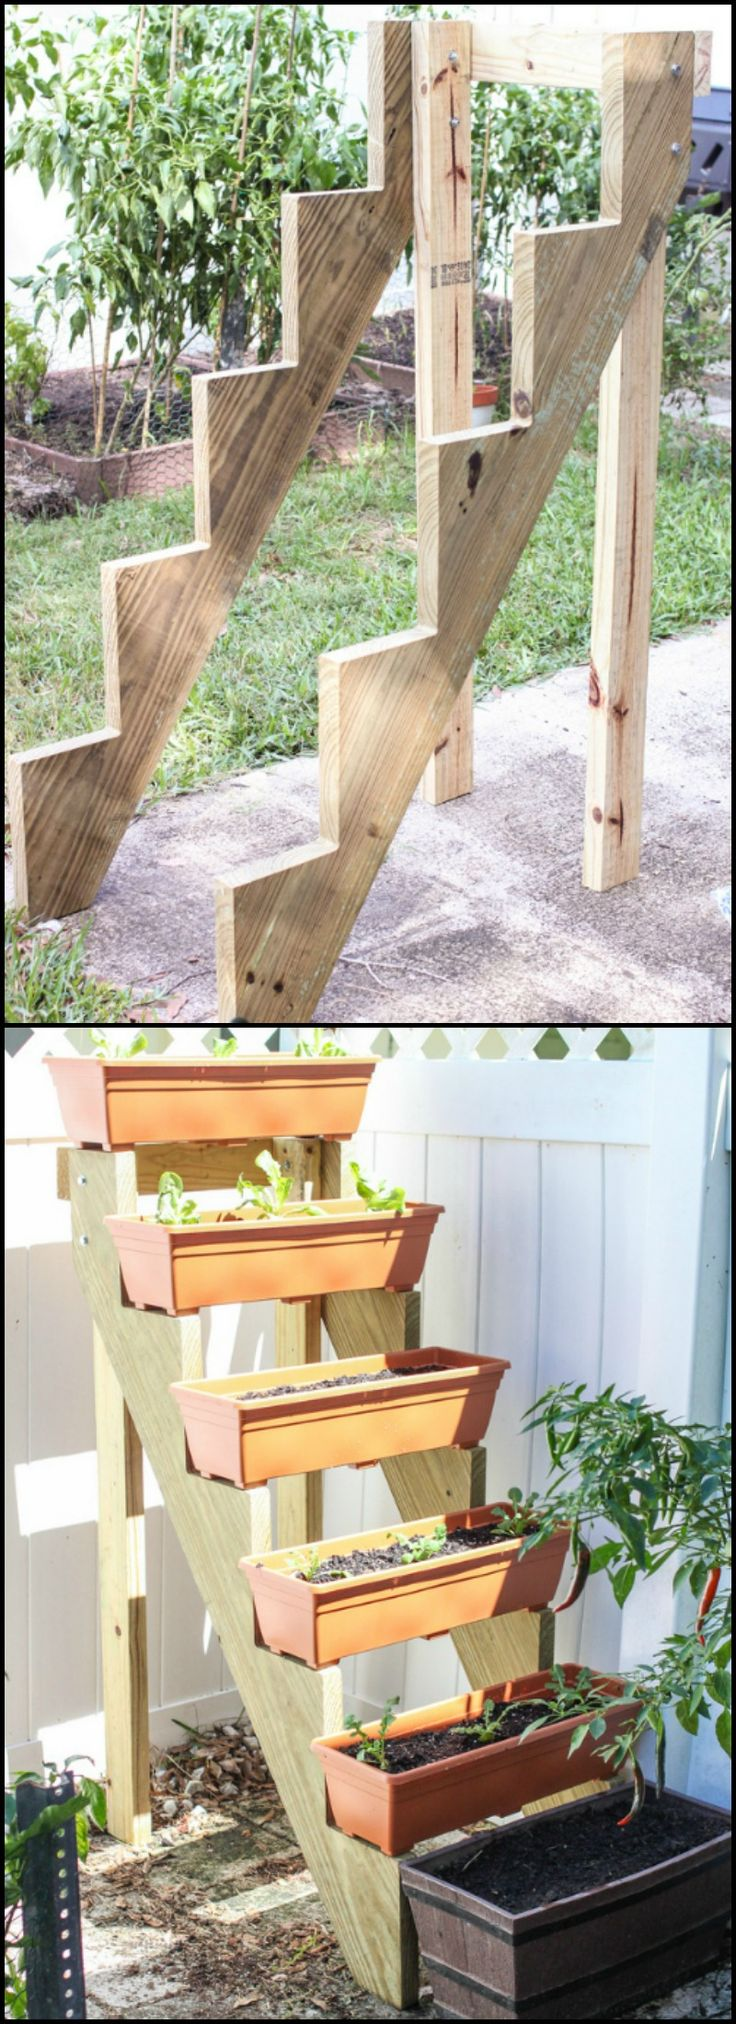 Space-saving staircase vertical planter